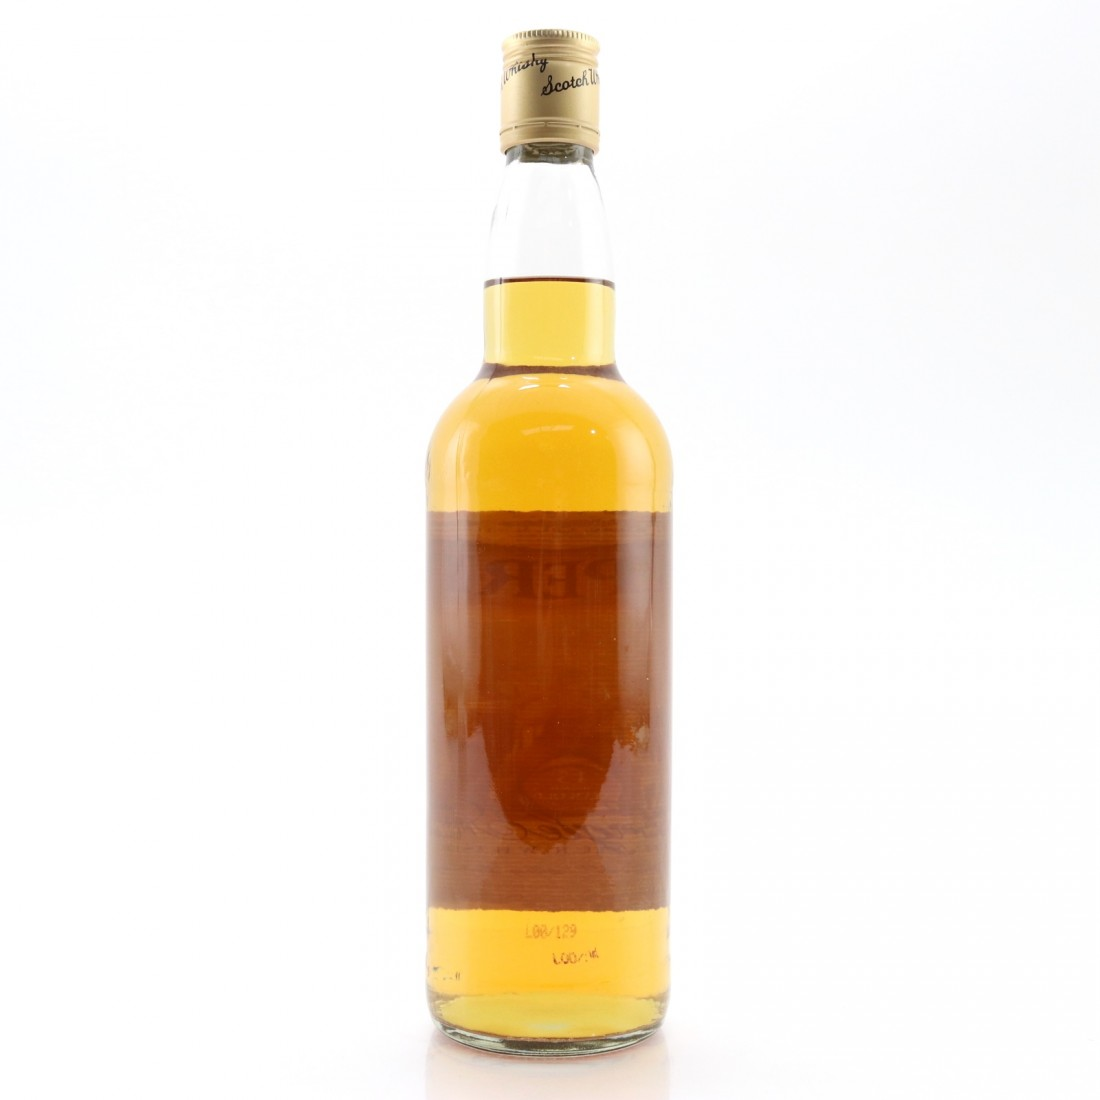 Imperial 15 Year Old